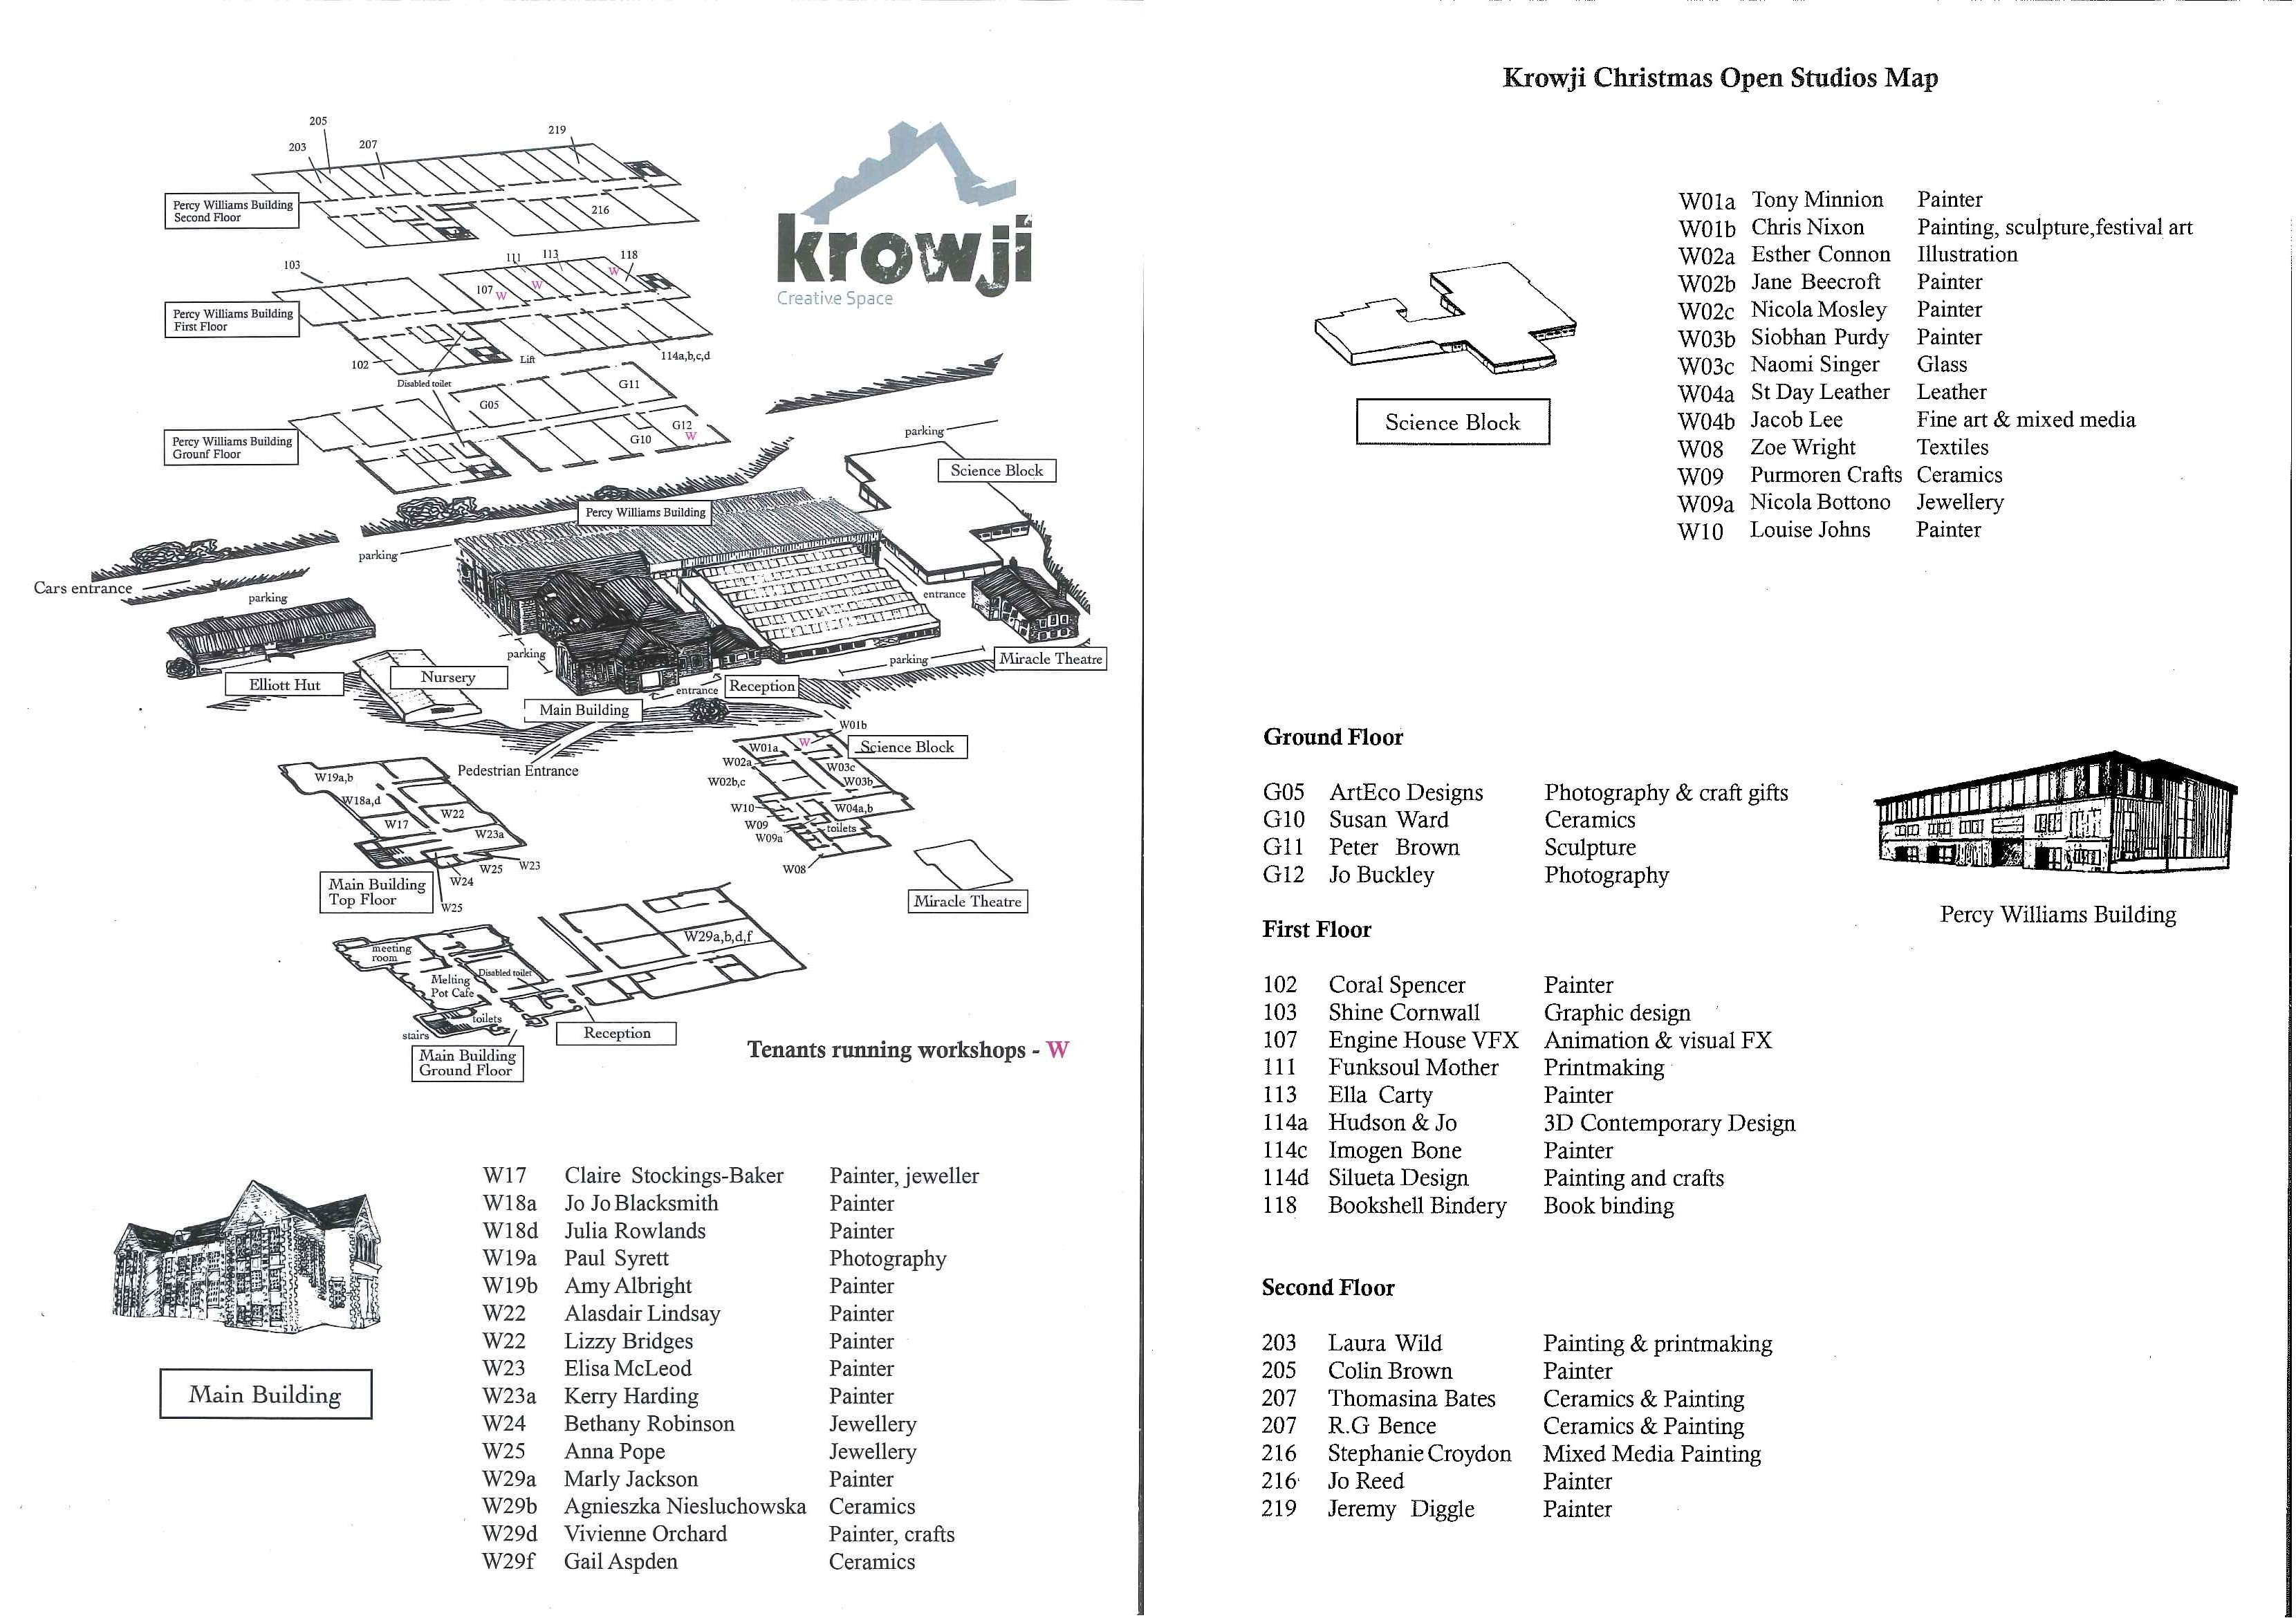 Map of Christmas Open Studios 2015